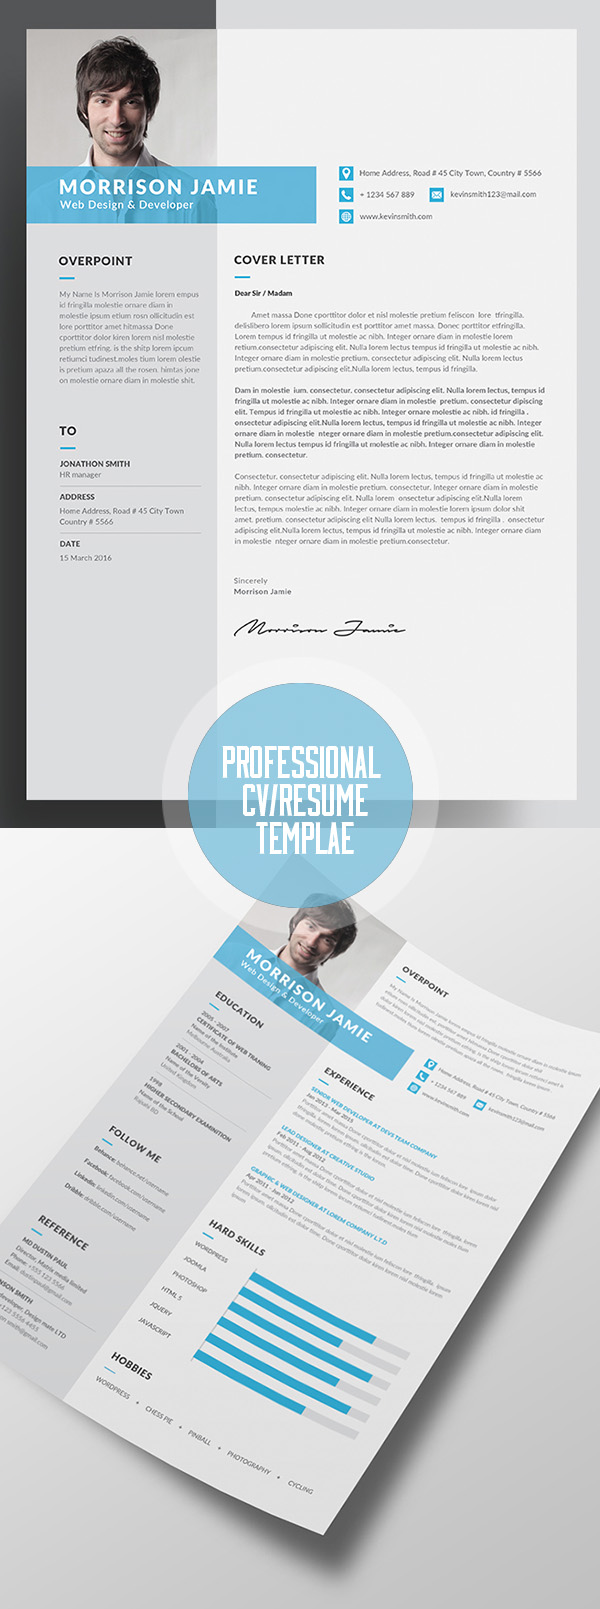 Clean Resume Word/indesign Template